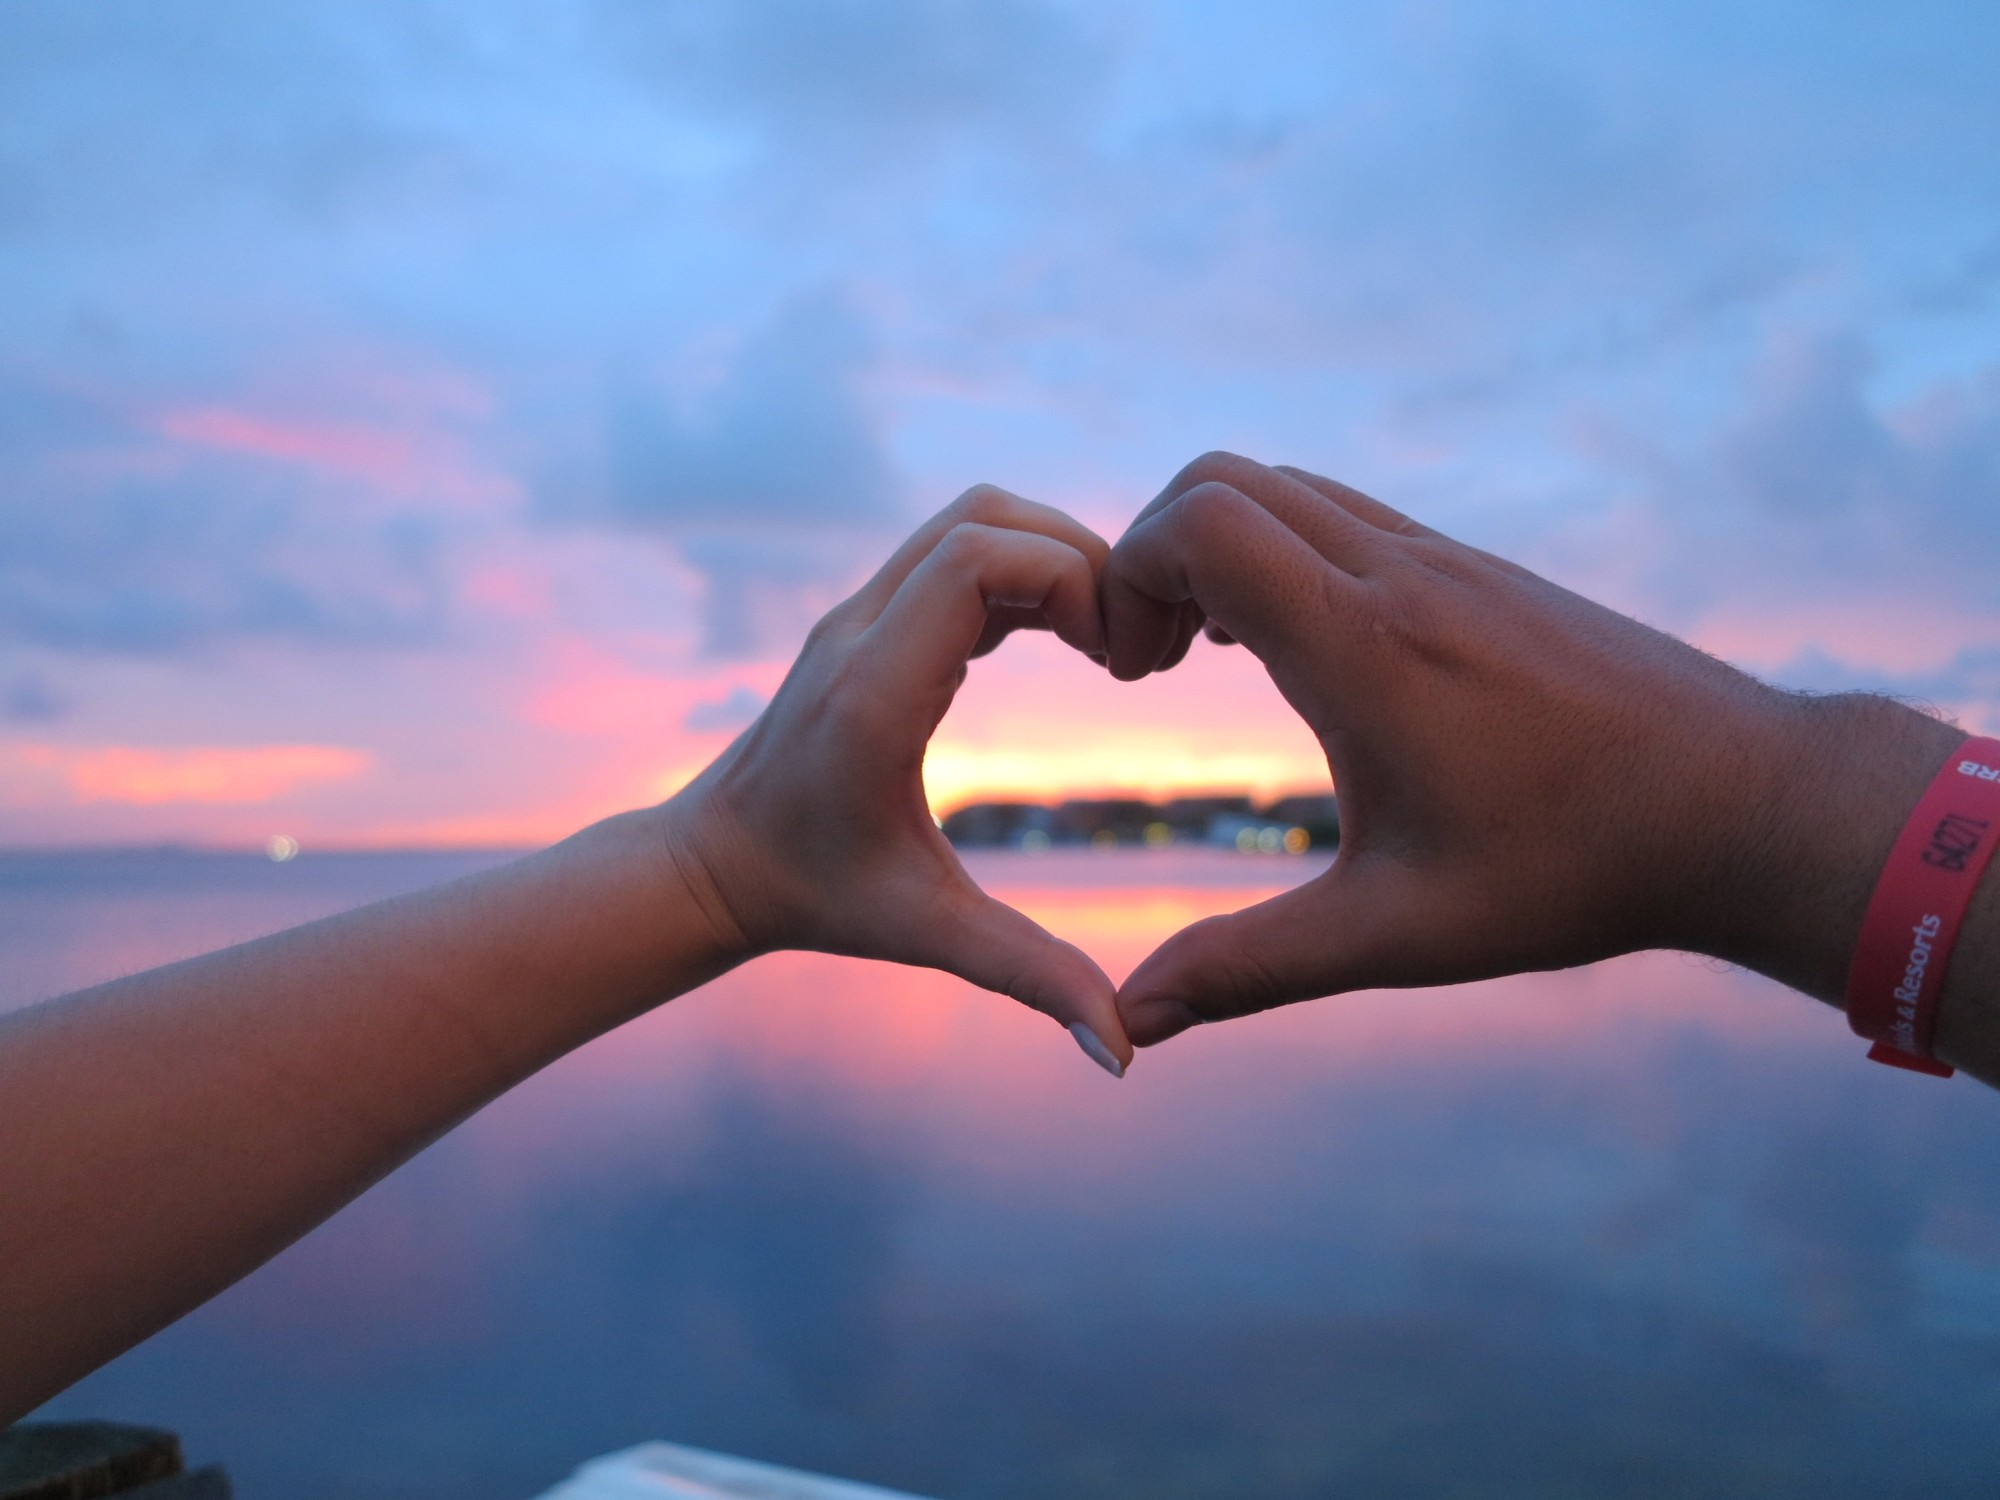 Couple Doing the Heart Gesture Using Their Hands